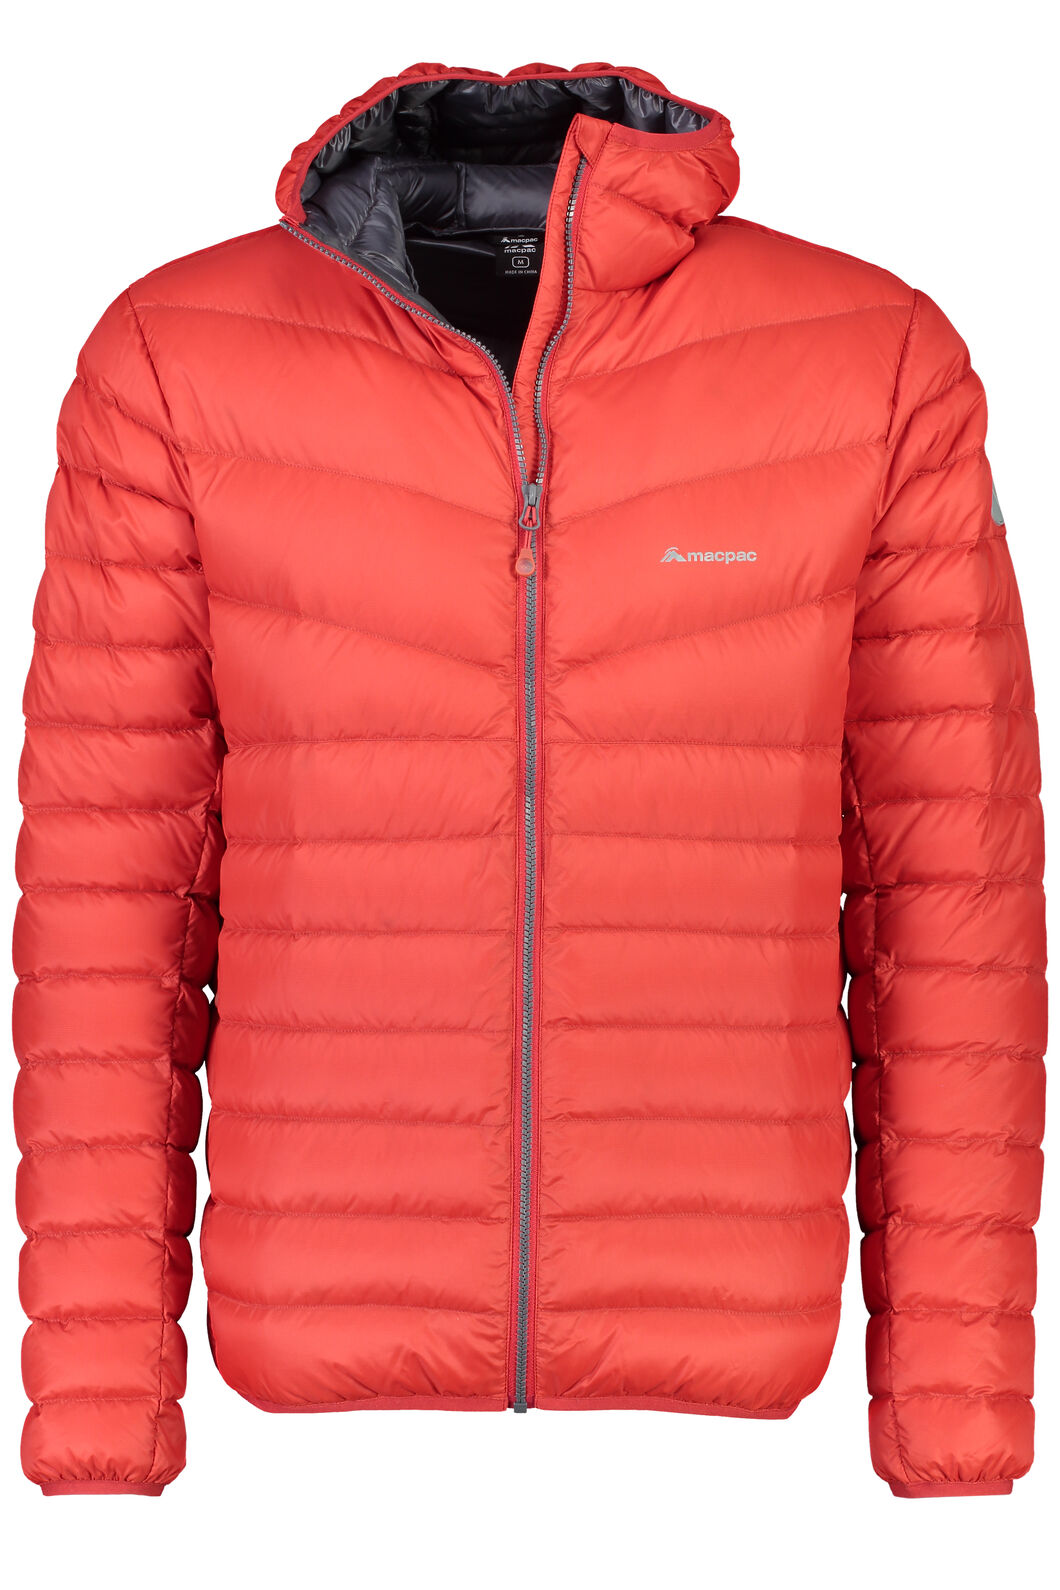 Mercury Down Jacket - Men's, Pompeian, hi-res